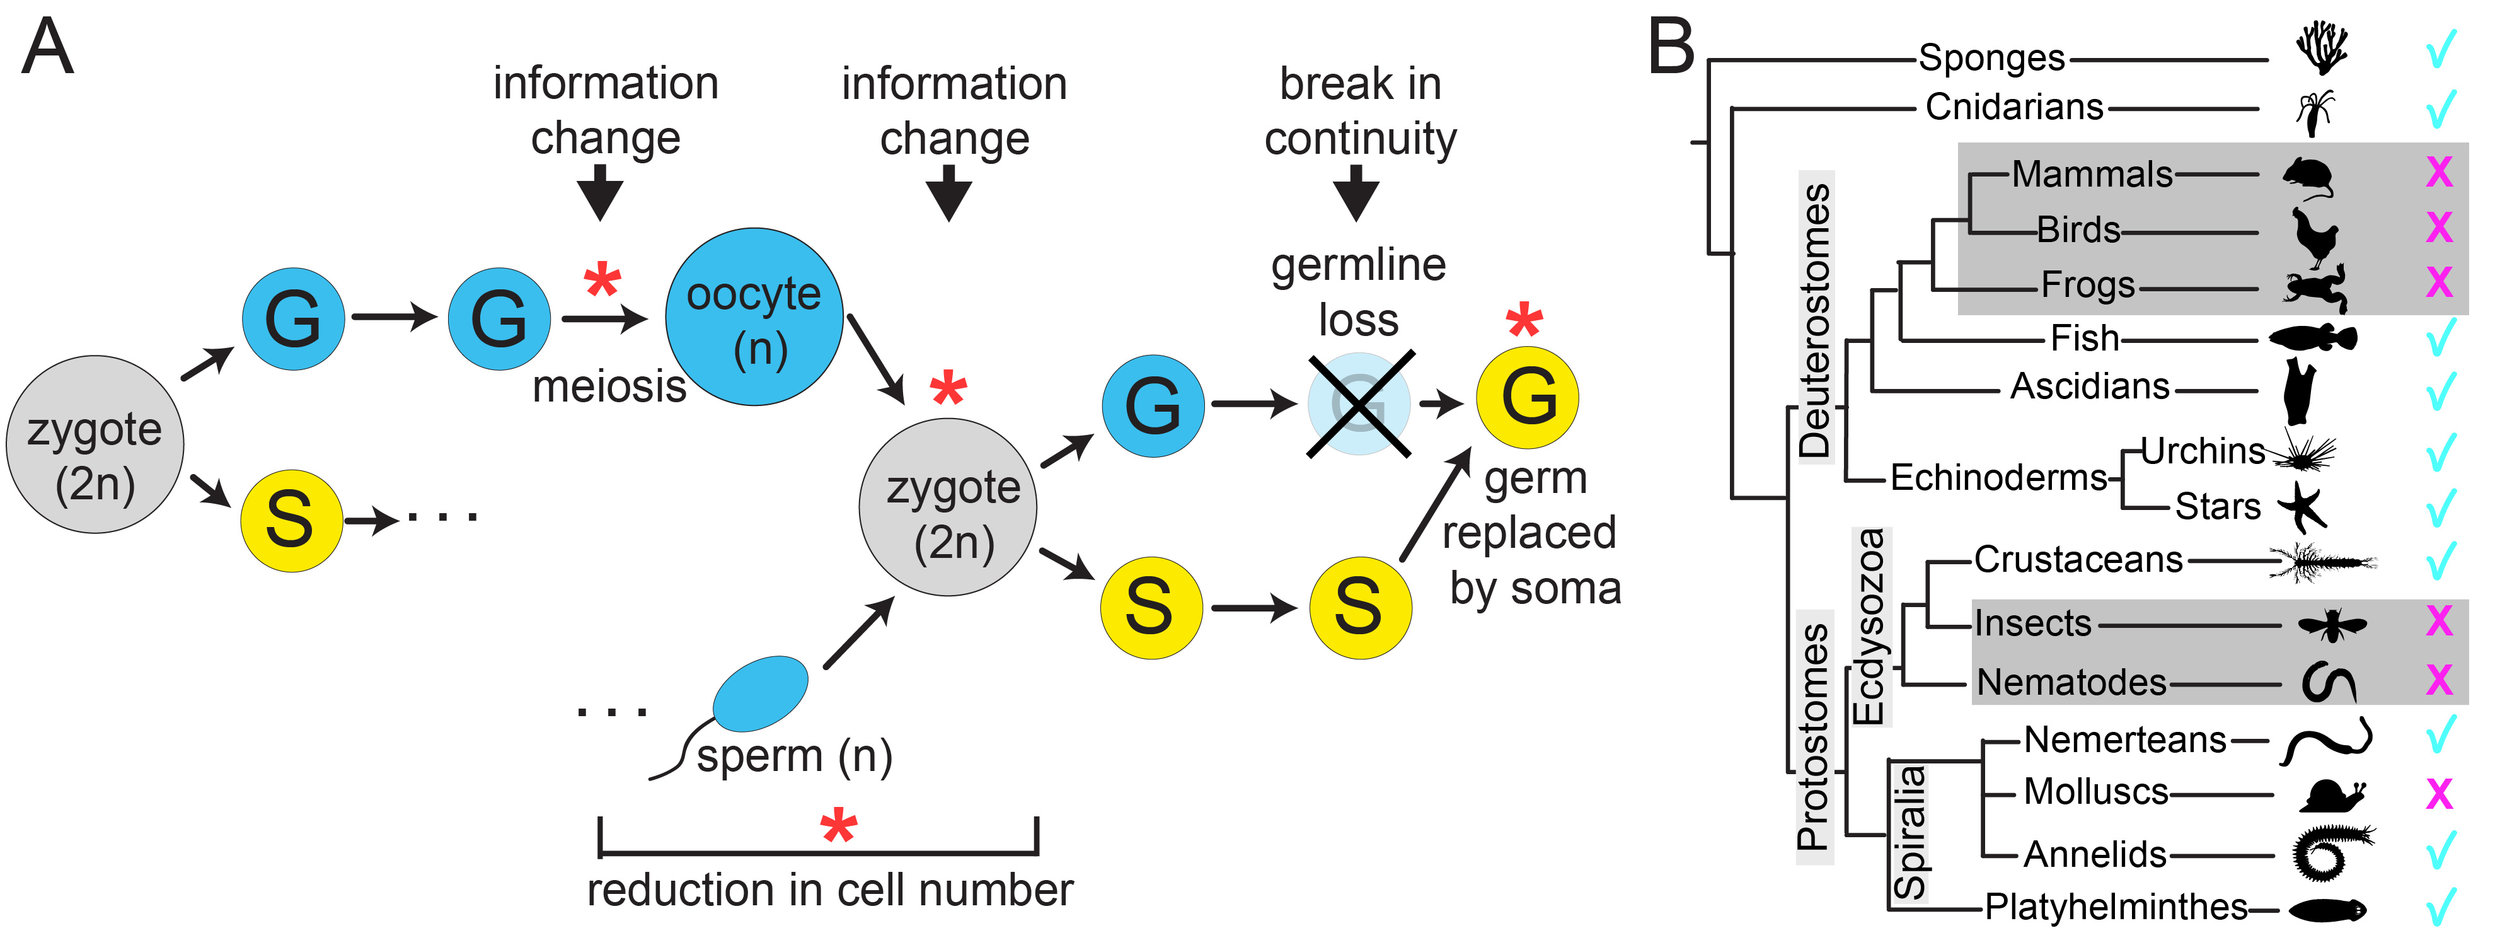 "A)  Which component of the germline is immortal and continuous? Stars: points of change. Cells originating from germline (G) in blue, from soma (S) in yellow.  B)  Distribution of germline regeneration across animal phyla. Gray indicates the phylogenetic location of traditional model organisms which cannot regenerate the germline  in vivo  (indicated by ""X""). Check marks indicate clades in which there is evidence for germline regeneration."